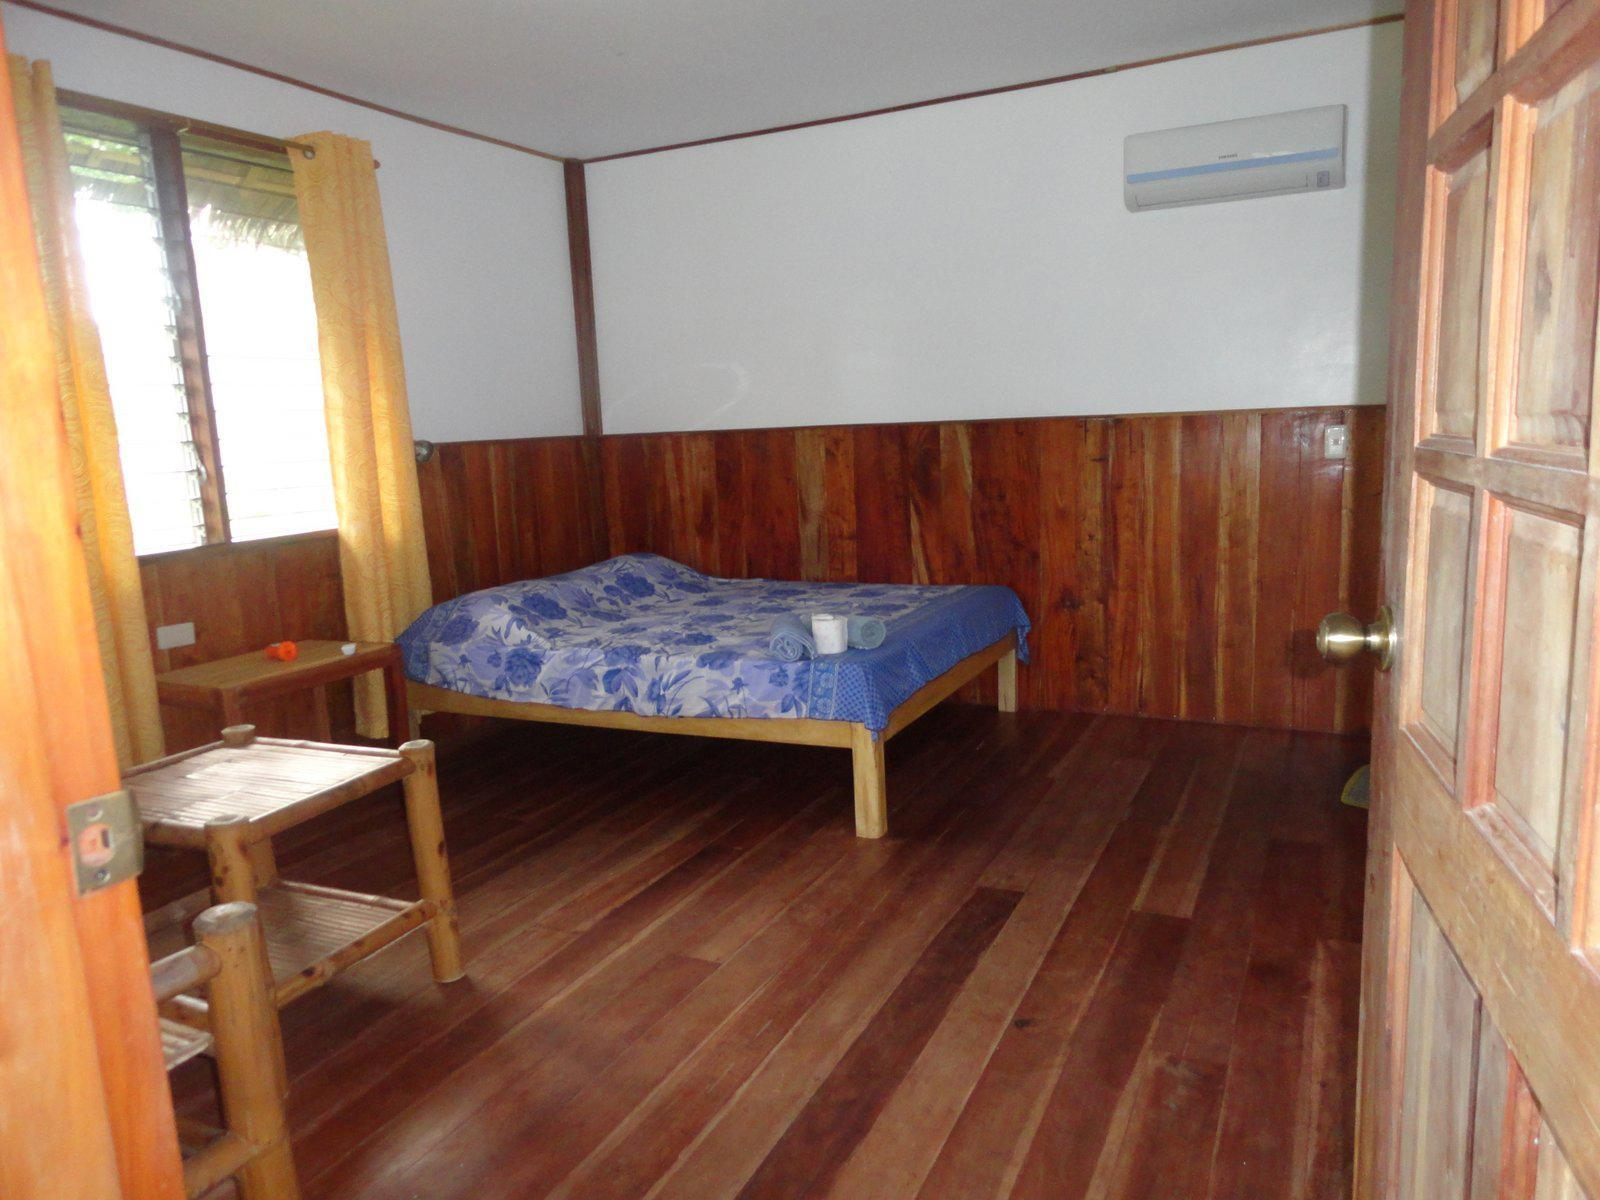 Casa Rural Con Aire Acondicionado (Air Conditioning Cottage)